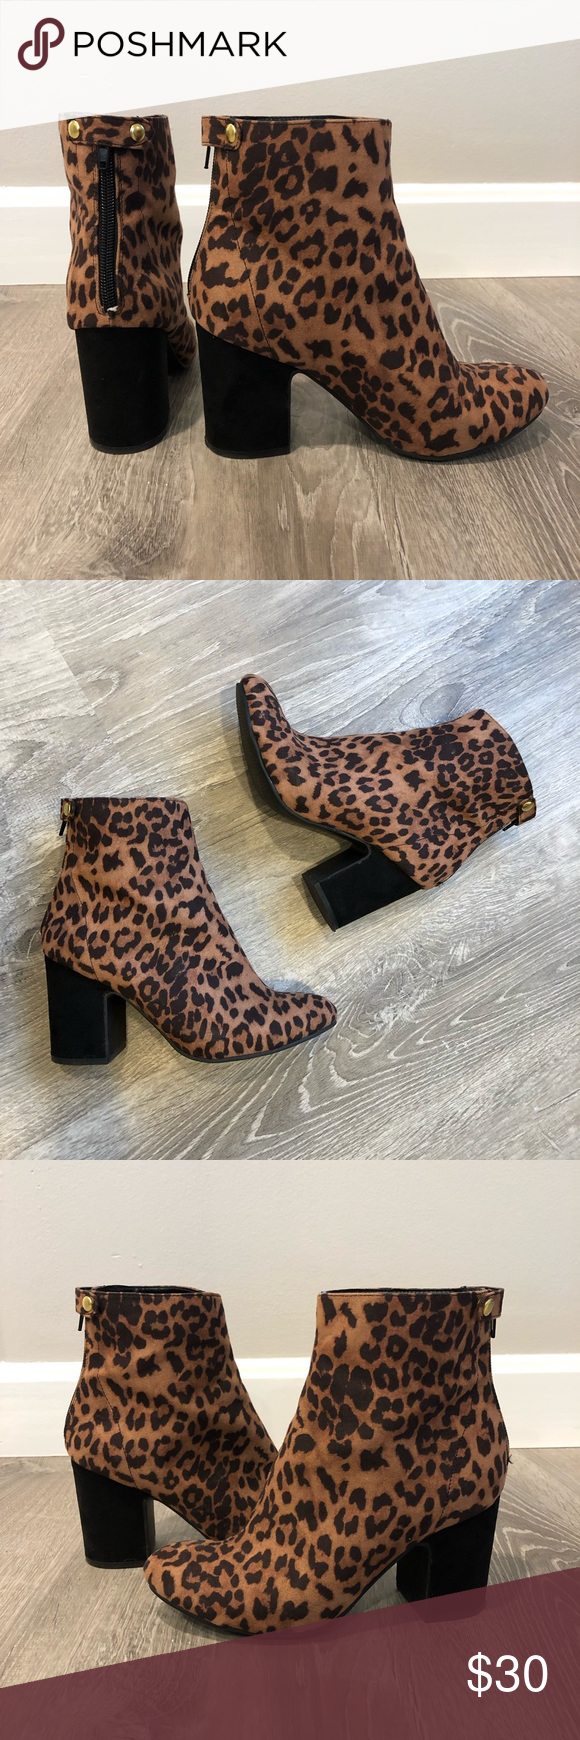 leopard print ankle boots new look